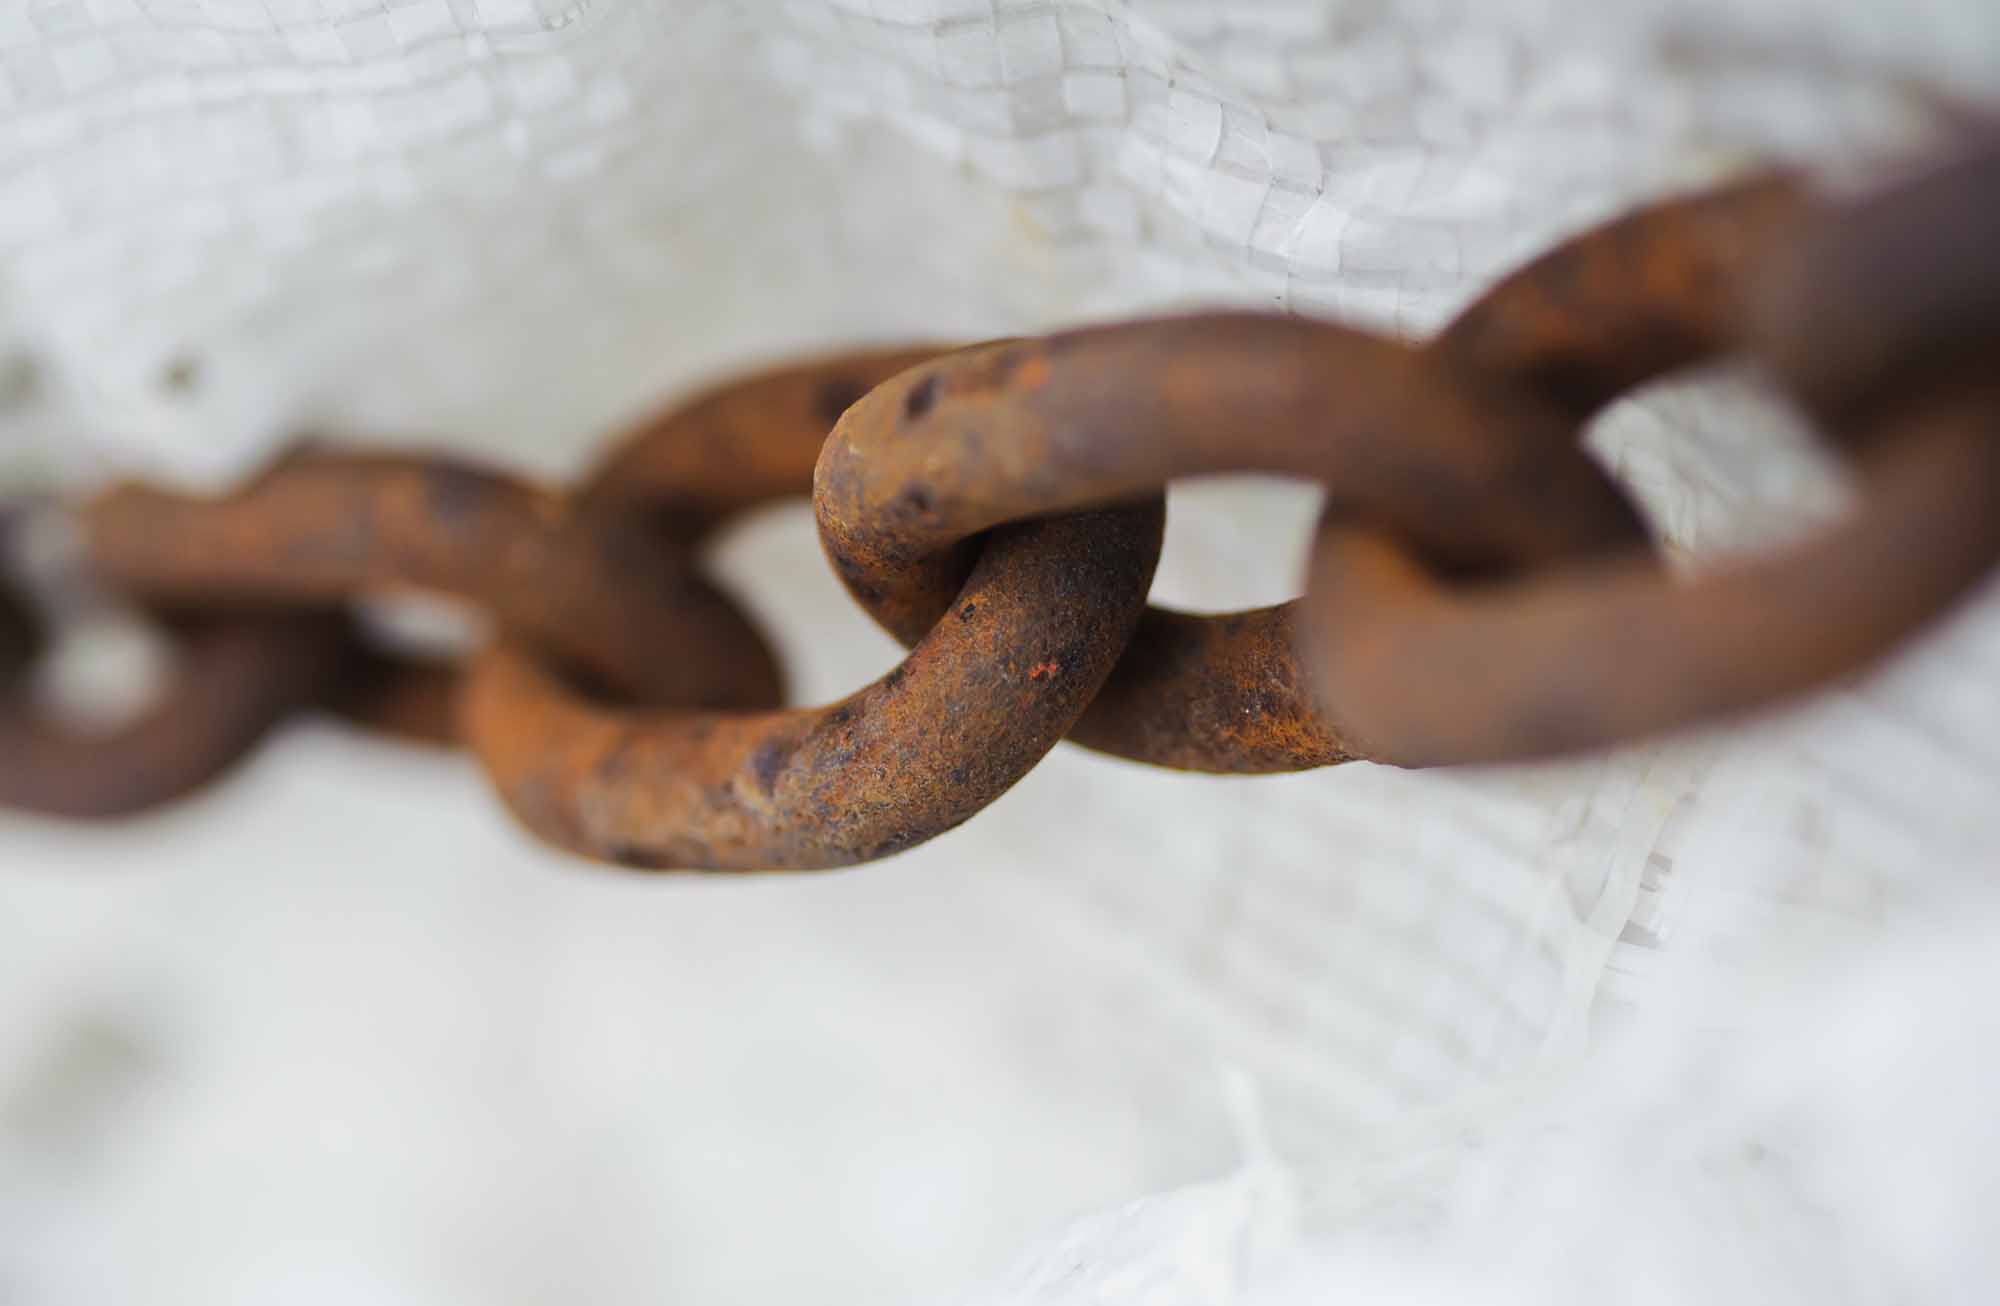 \u00a0Abstract metal thick chain. Old and rusty. slavery metaphor